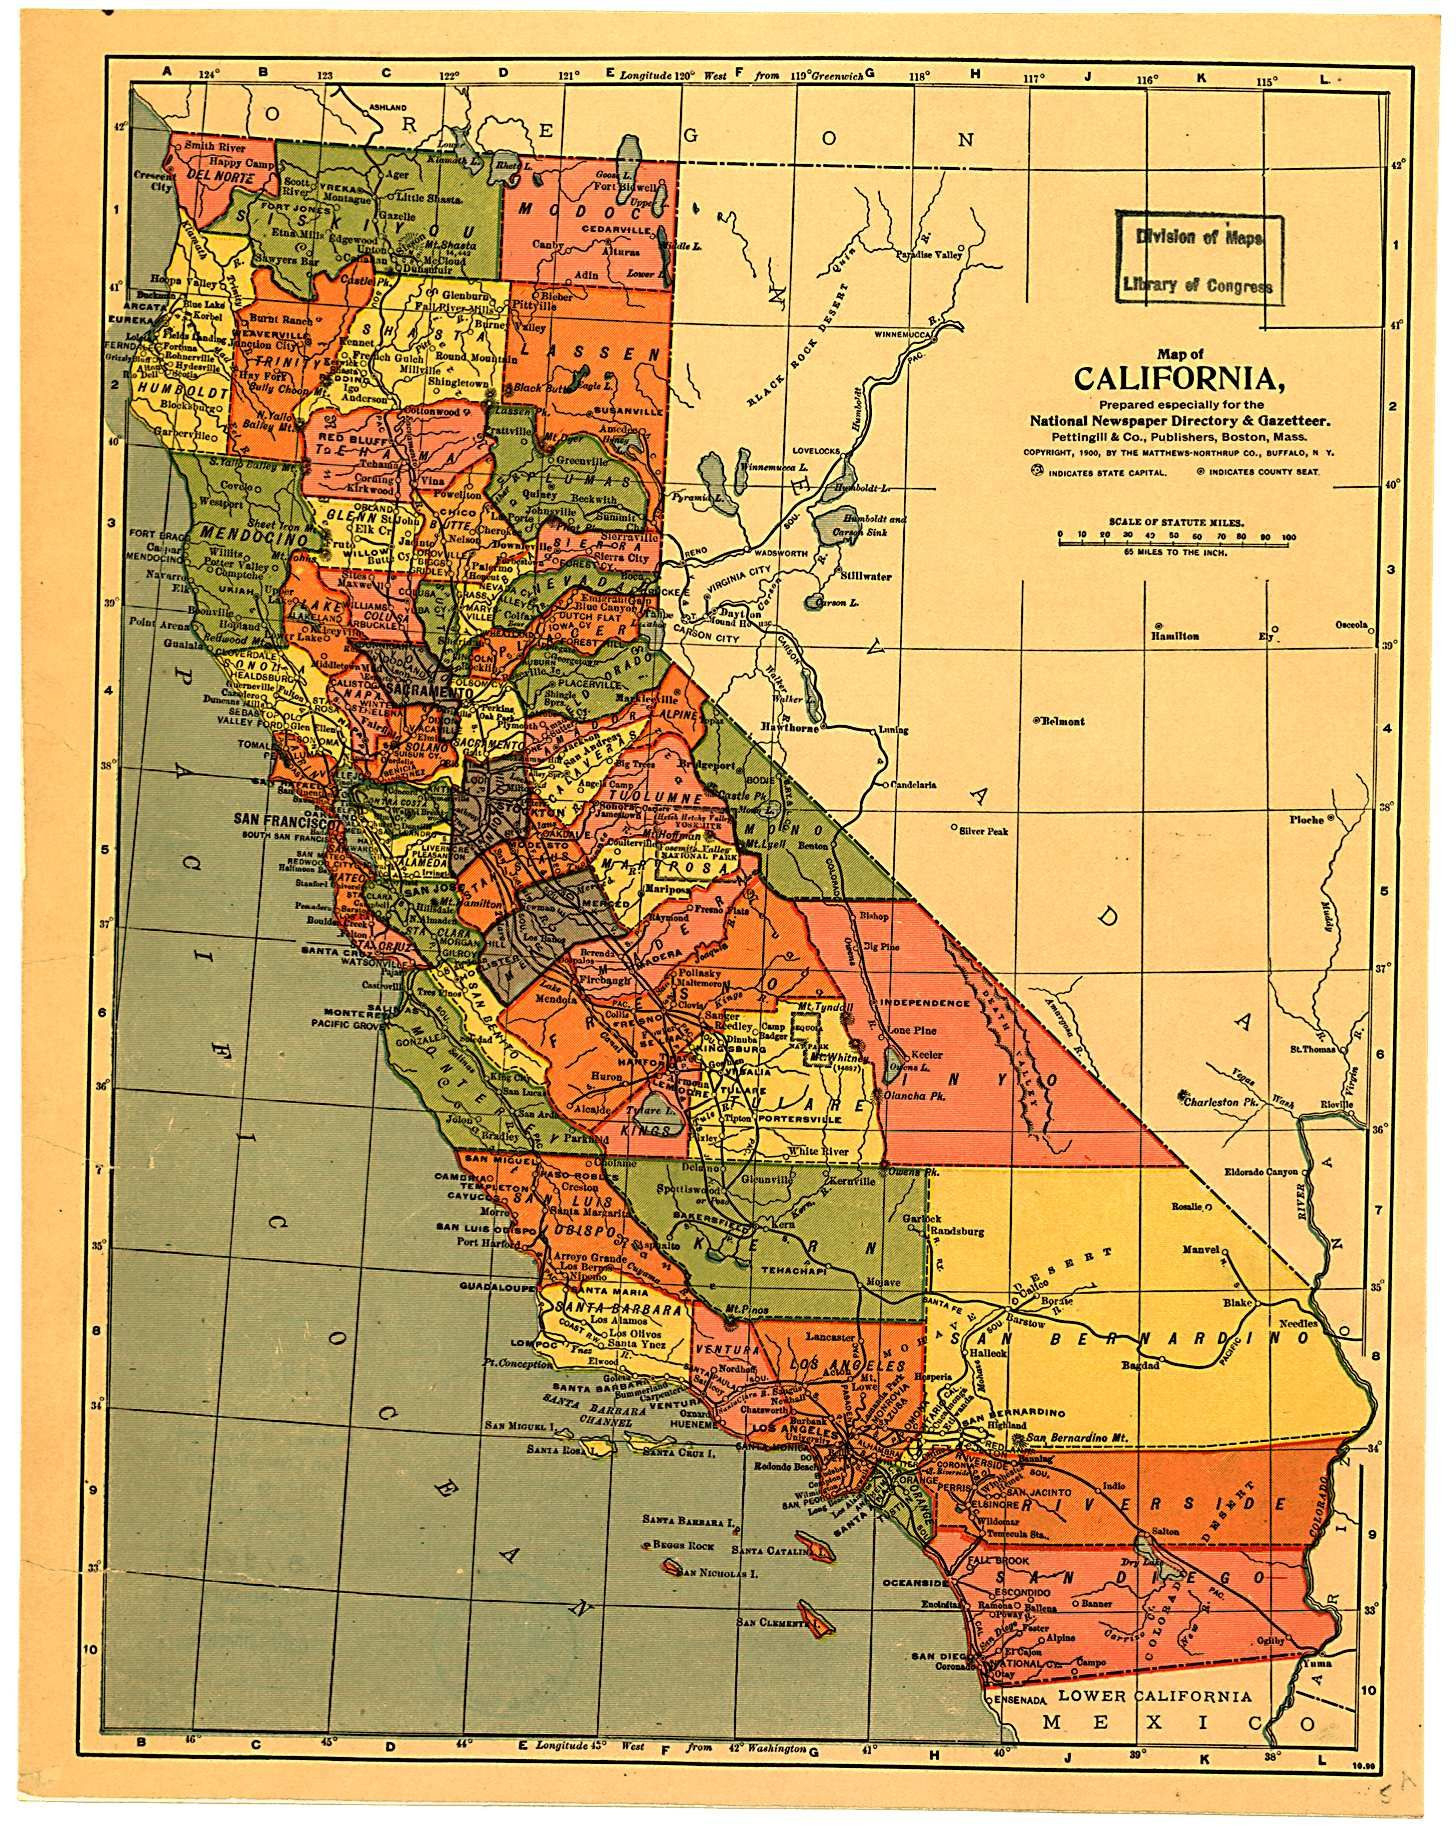 Where Is Garden Grove California On The Map Printable Maps - Where Is Garden Grove California On The Map